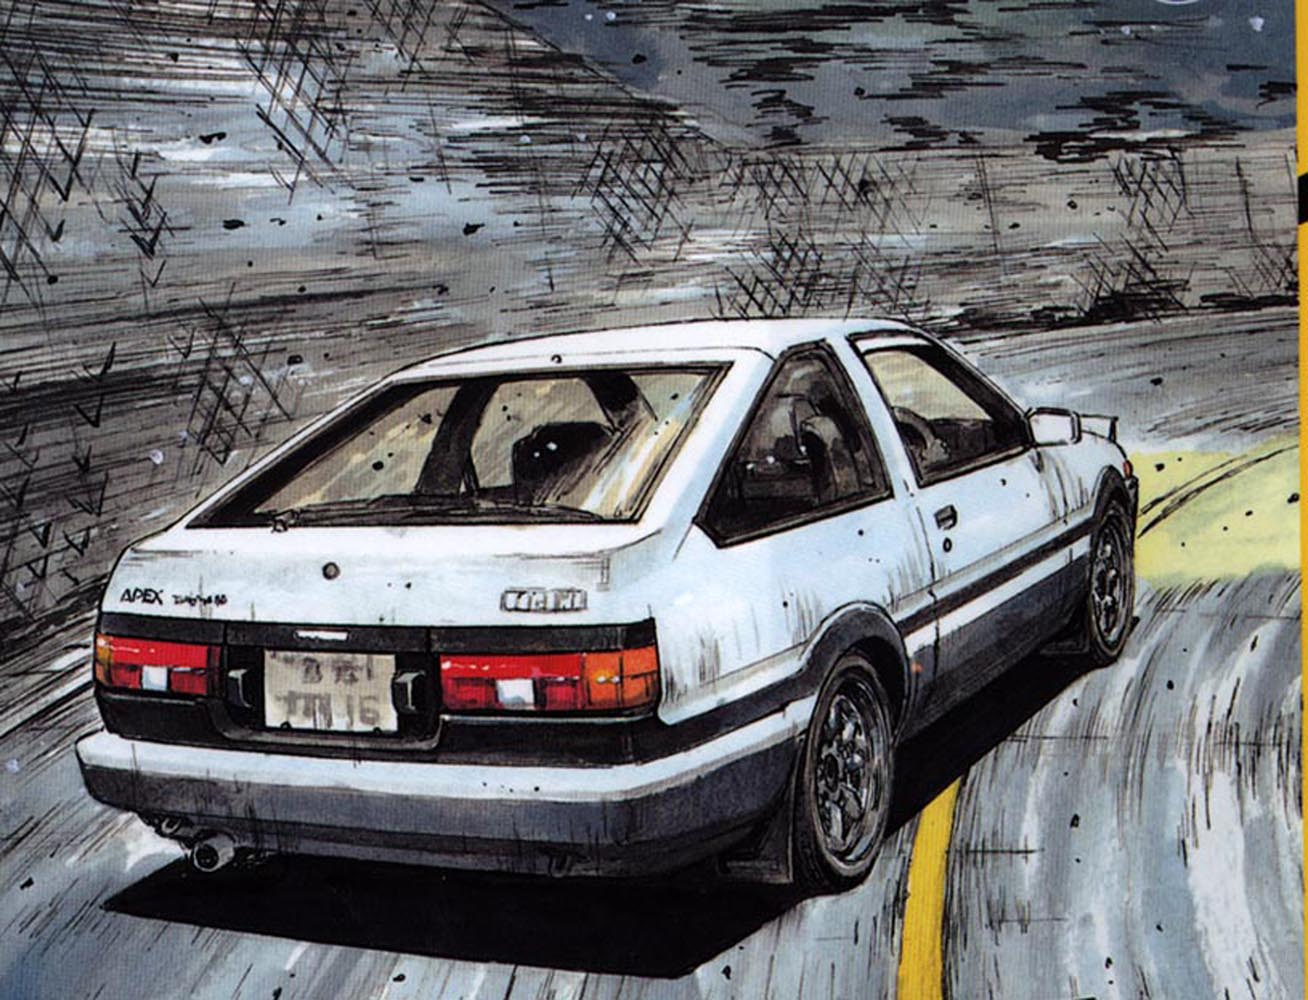 wallpapers initial d wallpaper cave. Black Bedroom Furniture Sets. Home Design Ideas